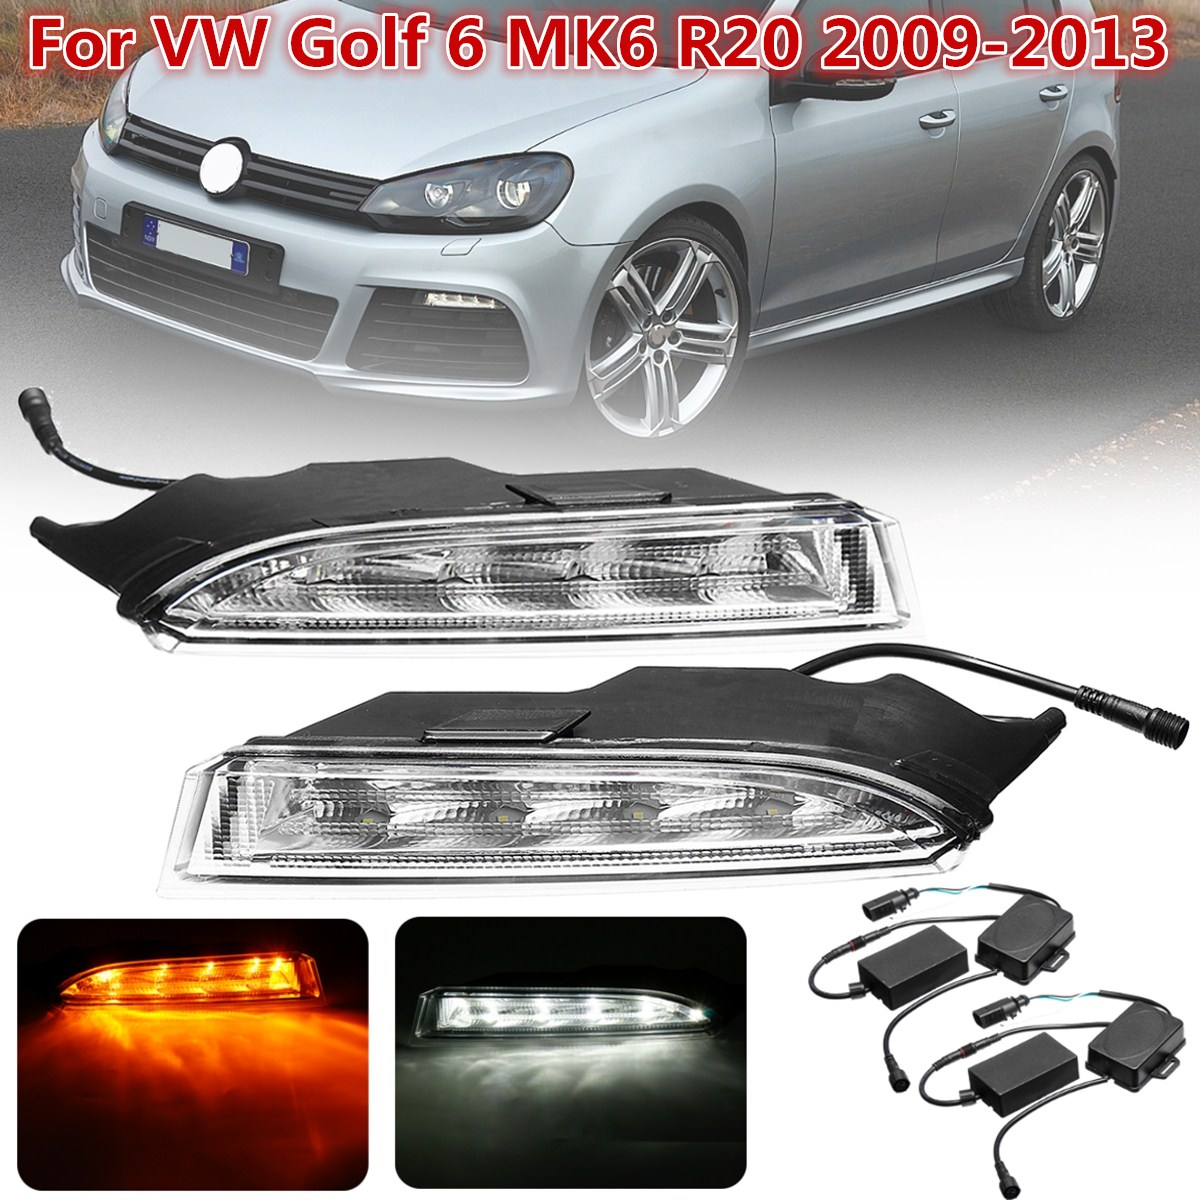 1 Pair Led Car-Styling Day Daytime Running Light Fog Light Lamp bumper lamp LED DRL For VW Golf 6 MK6 R20 2009 2010 2011~2013 car styling led drl daytime running light for volkswagen vw golf 7 mk7 2013 2017 led bumper drl with yellow turn signal